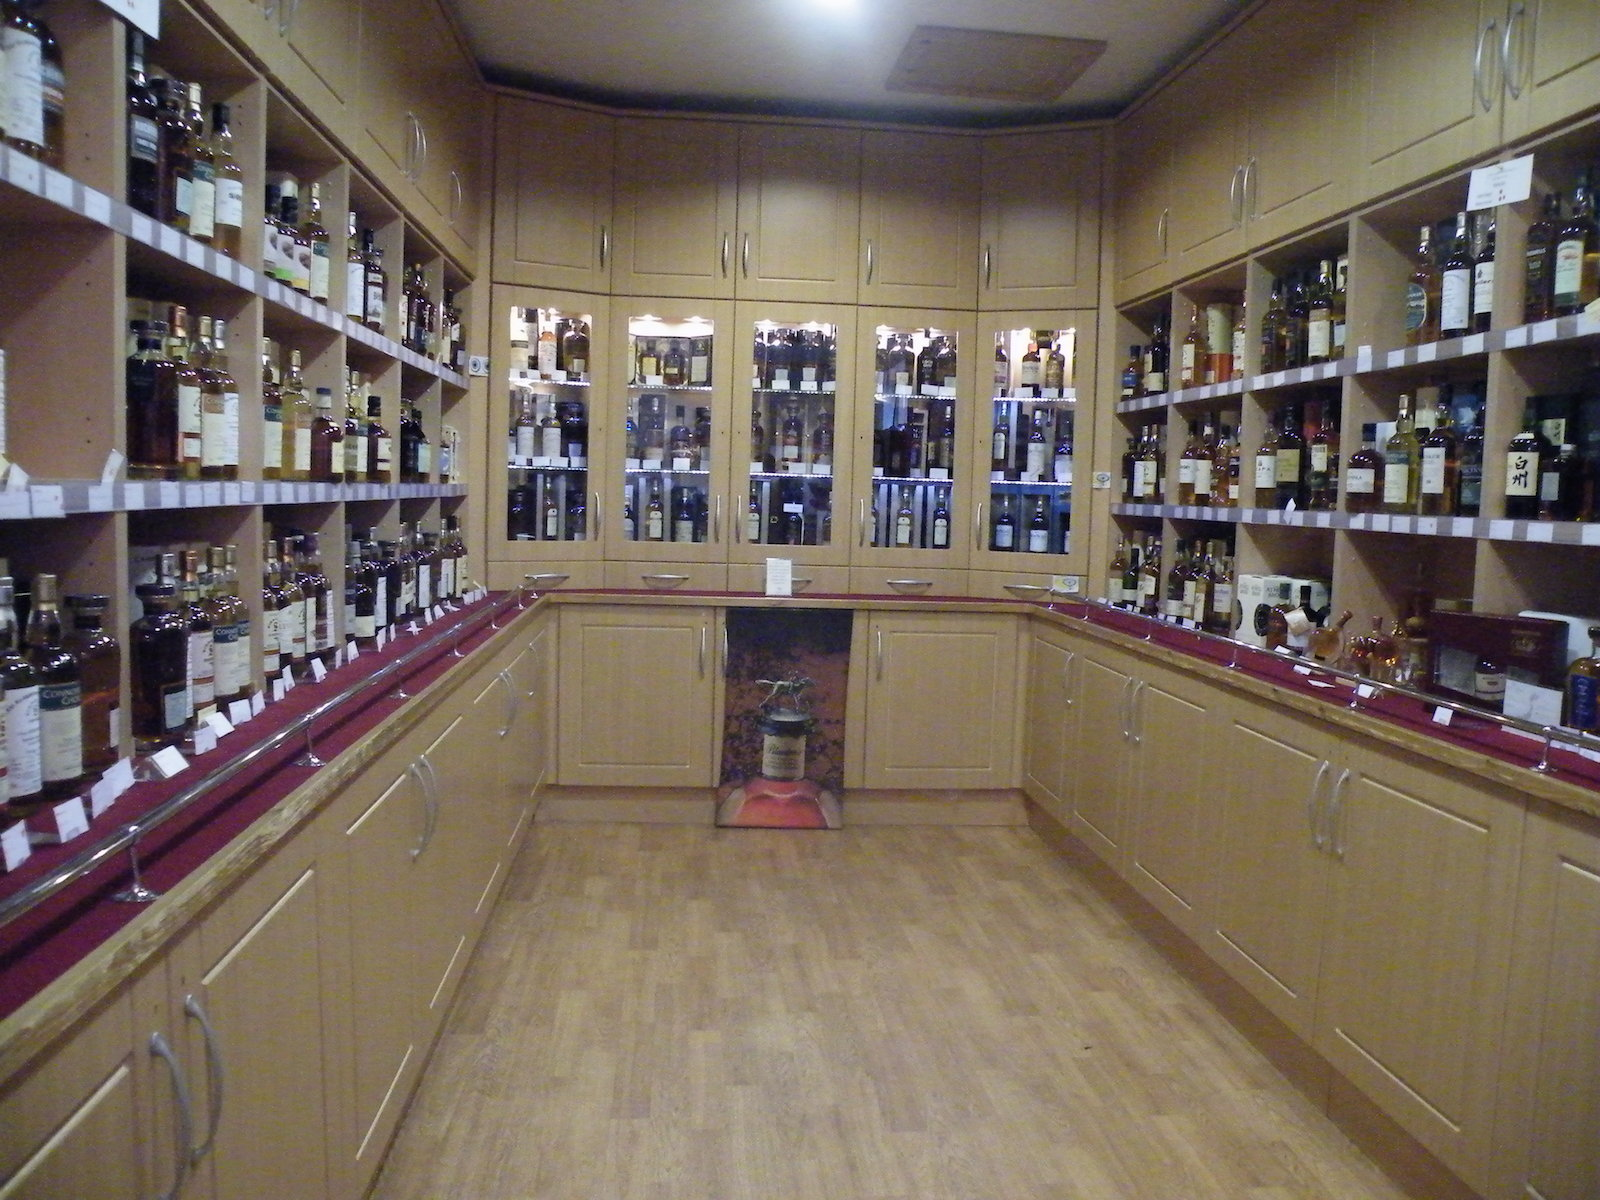 Lots of whisky!